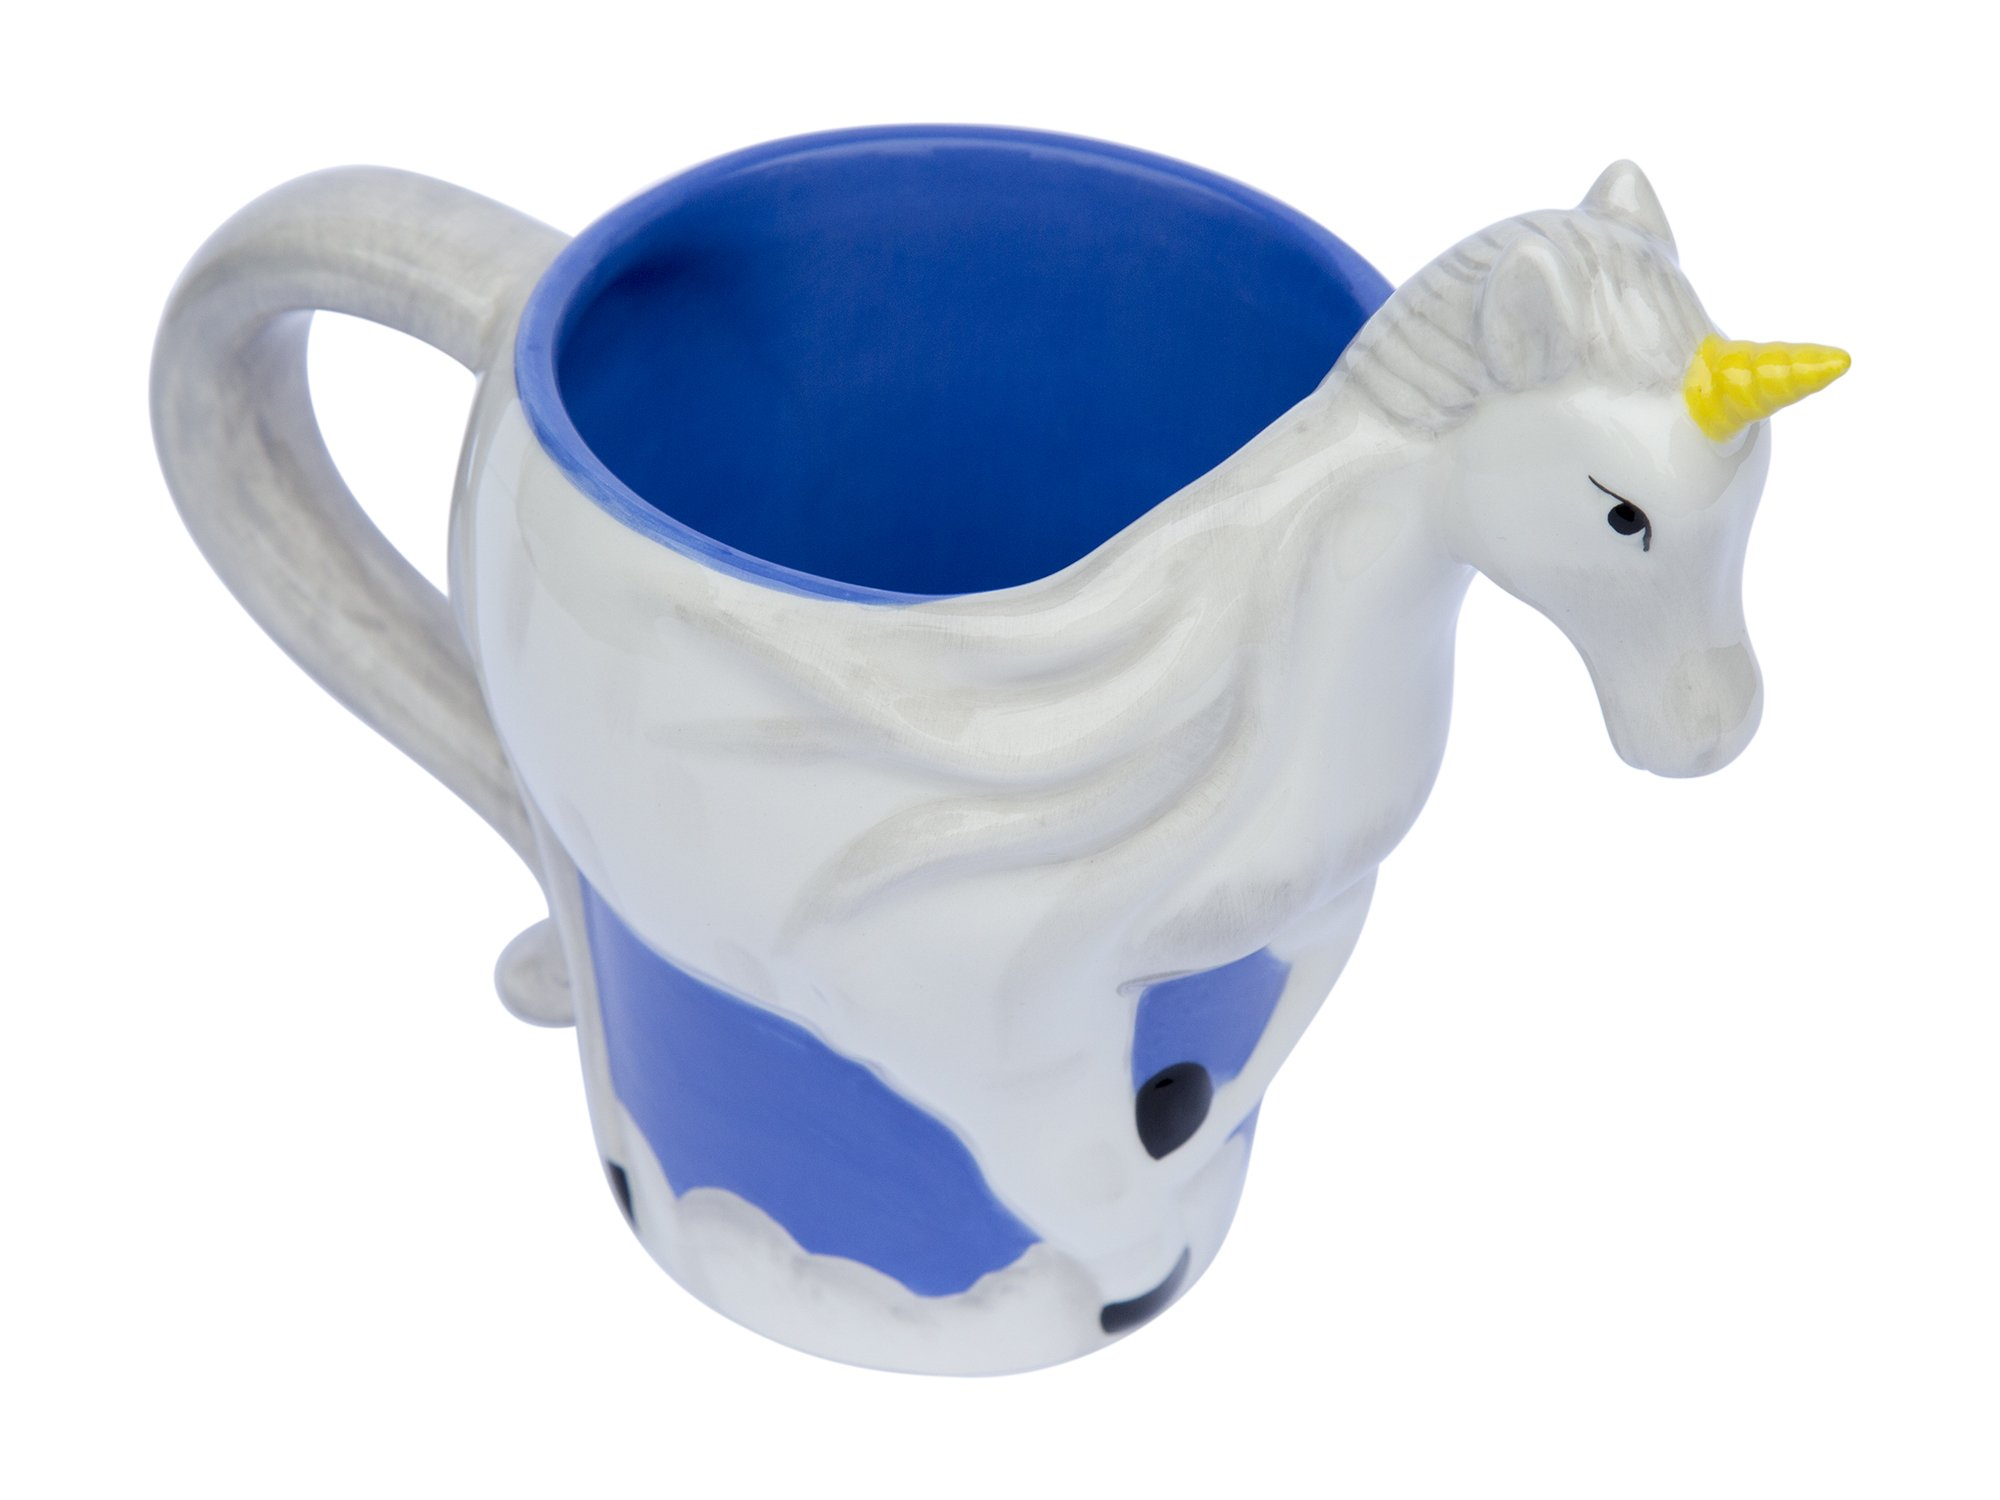 Ceramic Unicorn Coffee Mug w/Rainbow by Comfify - Sweet & Fantastical 3D Unicorn Design w/Magical Rainbow - Unique… 8